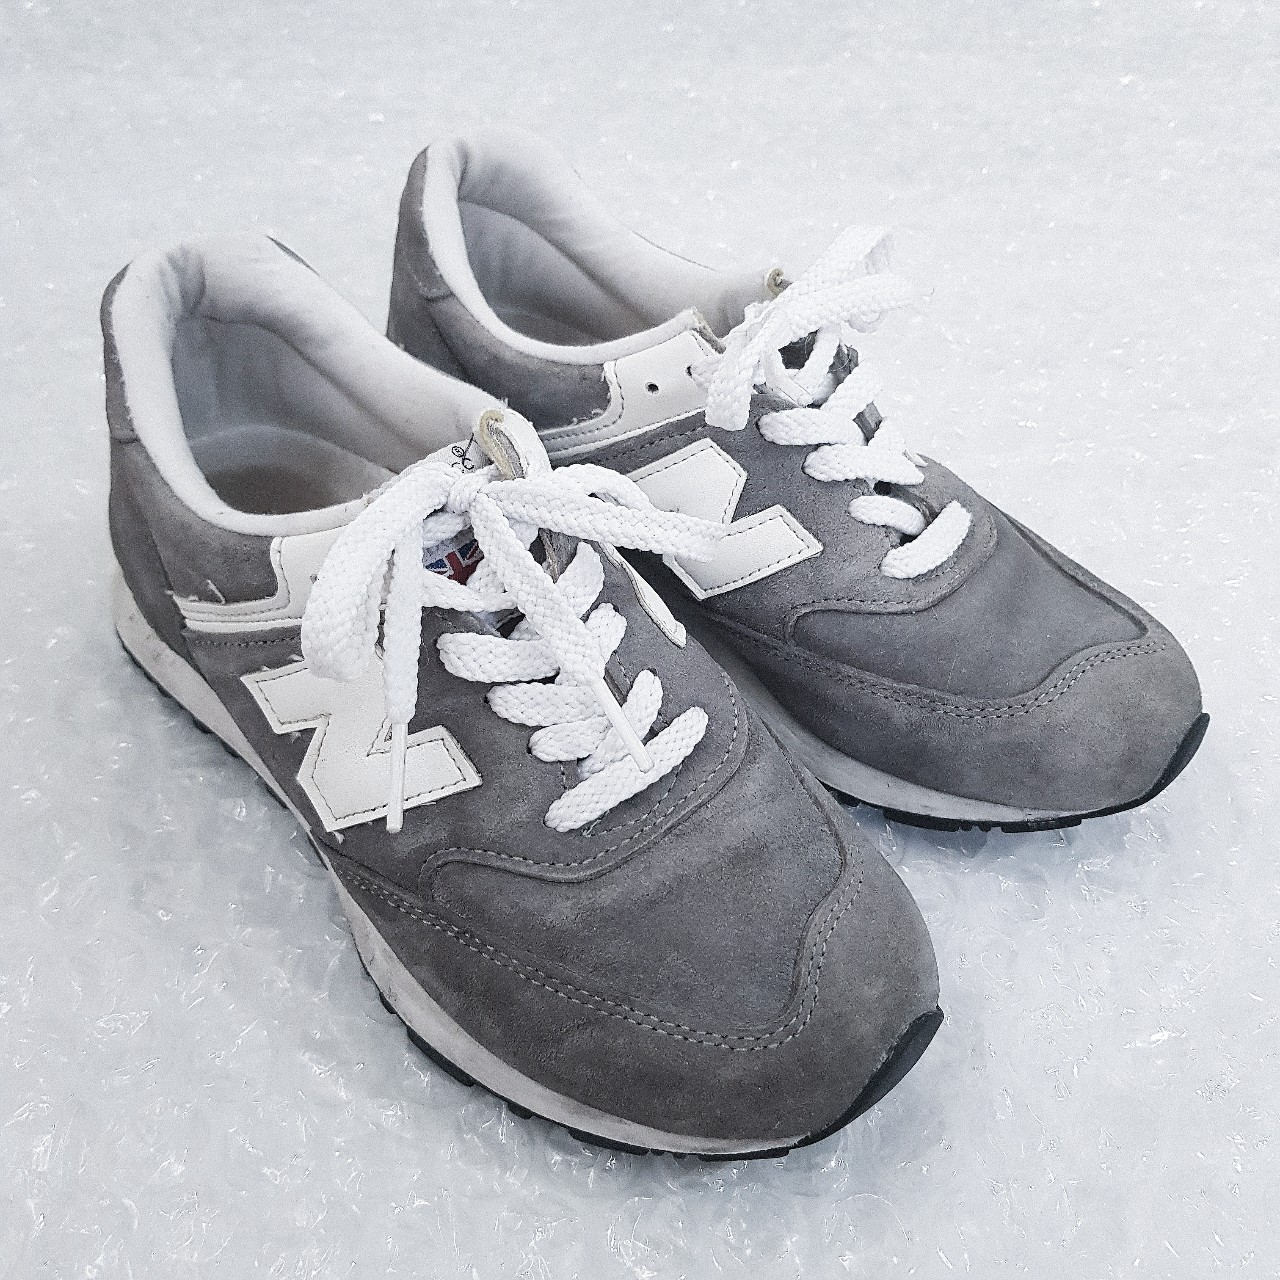 outlet store 861c4 66399 NEW BALANCE 576 TRAINERS grey & white chunky... - Depop